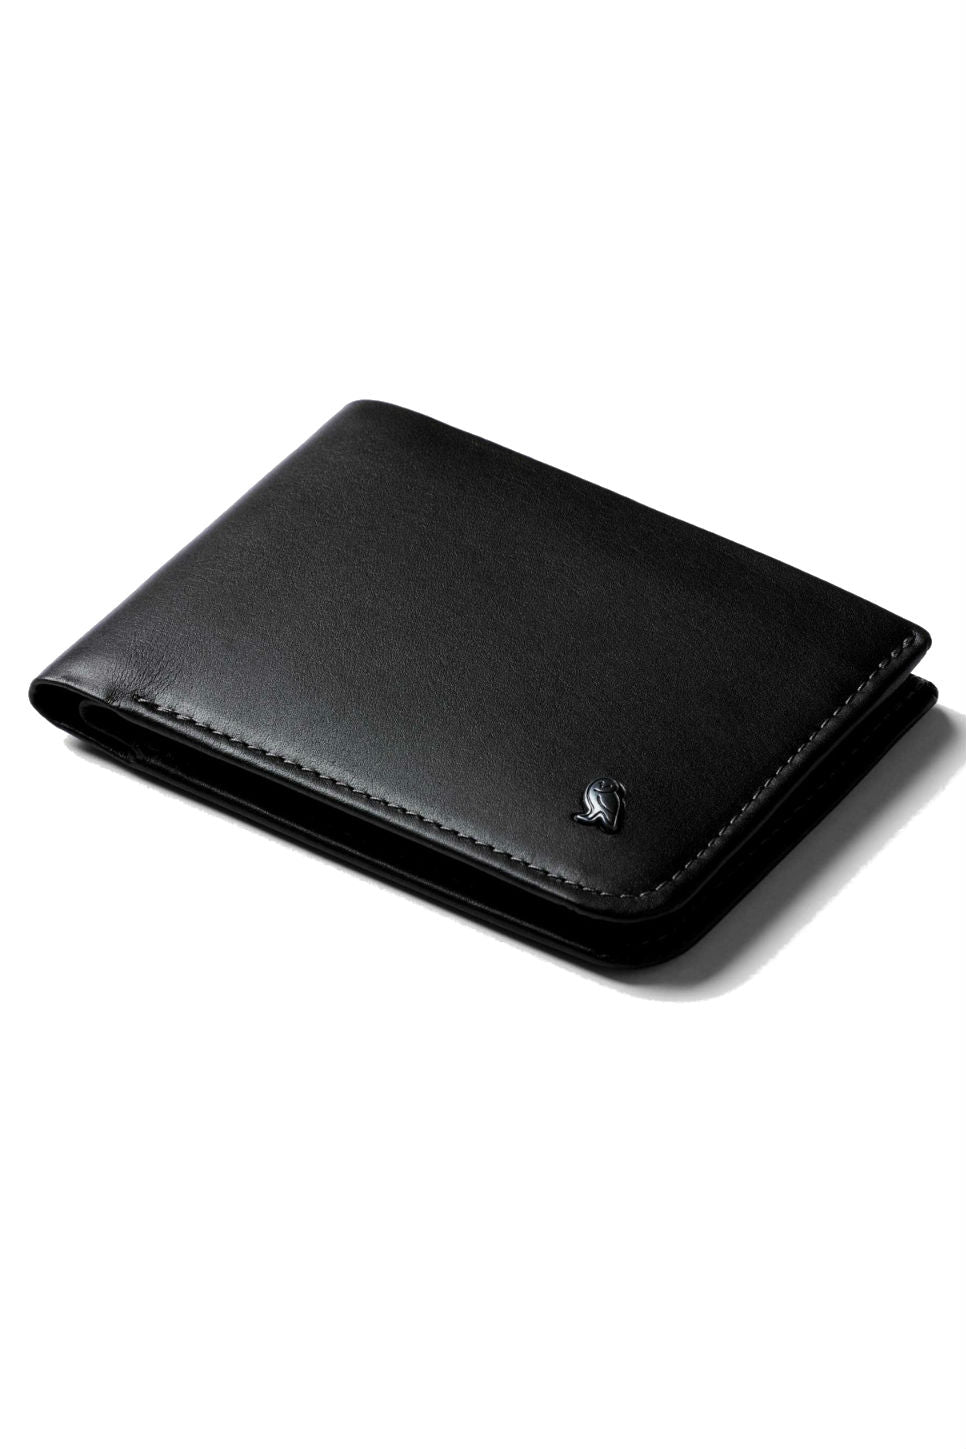 Bellroy - Hide & Seek Wallet - Black